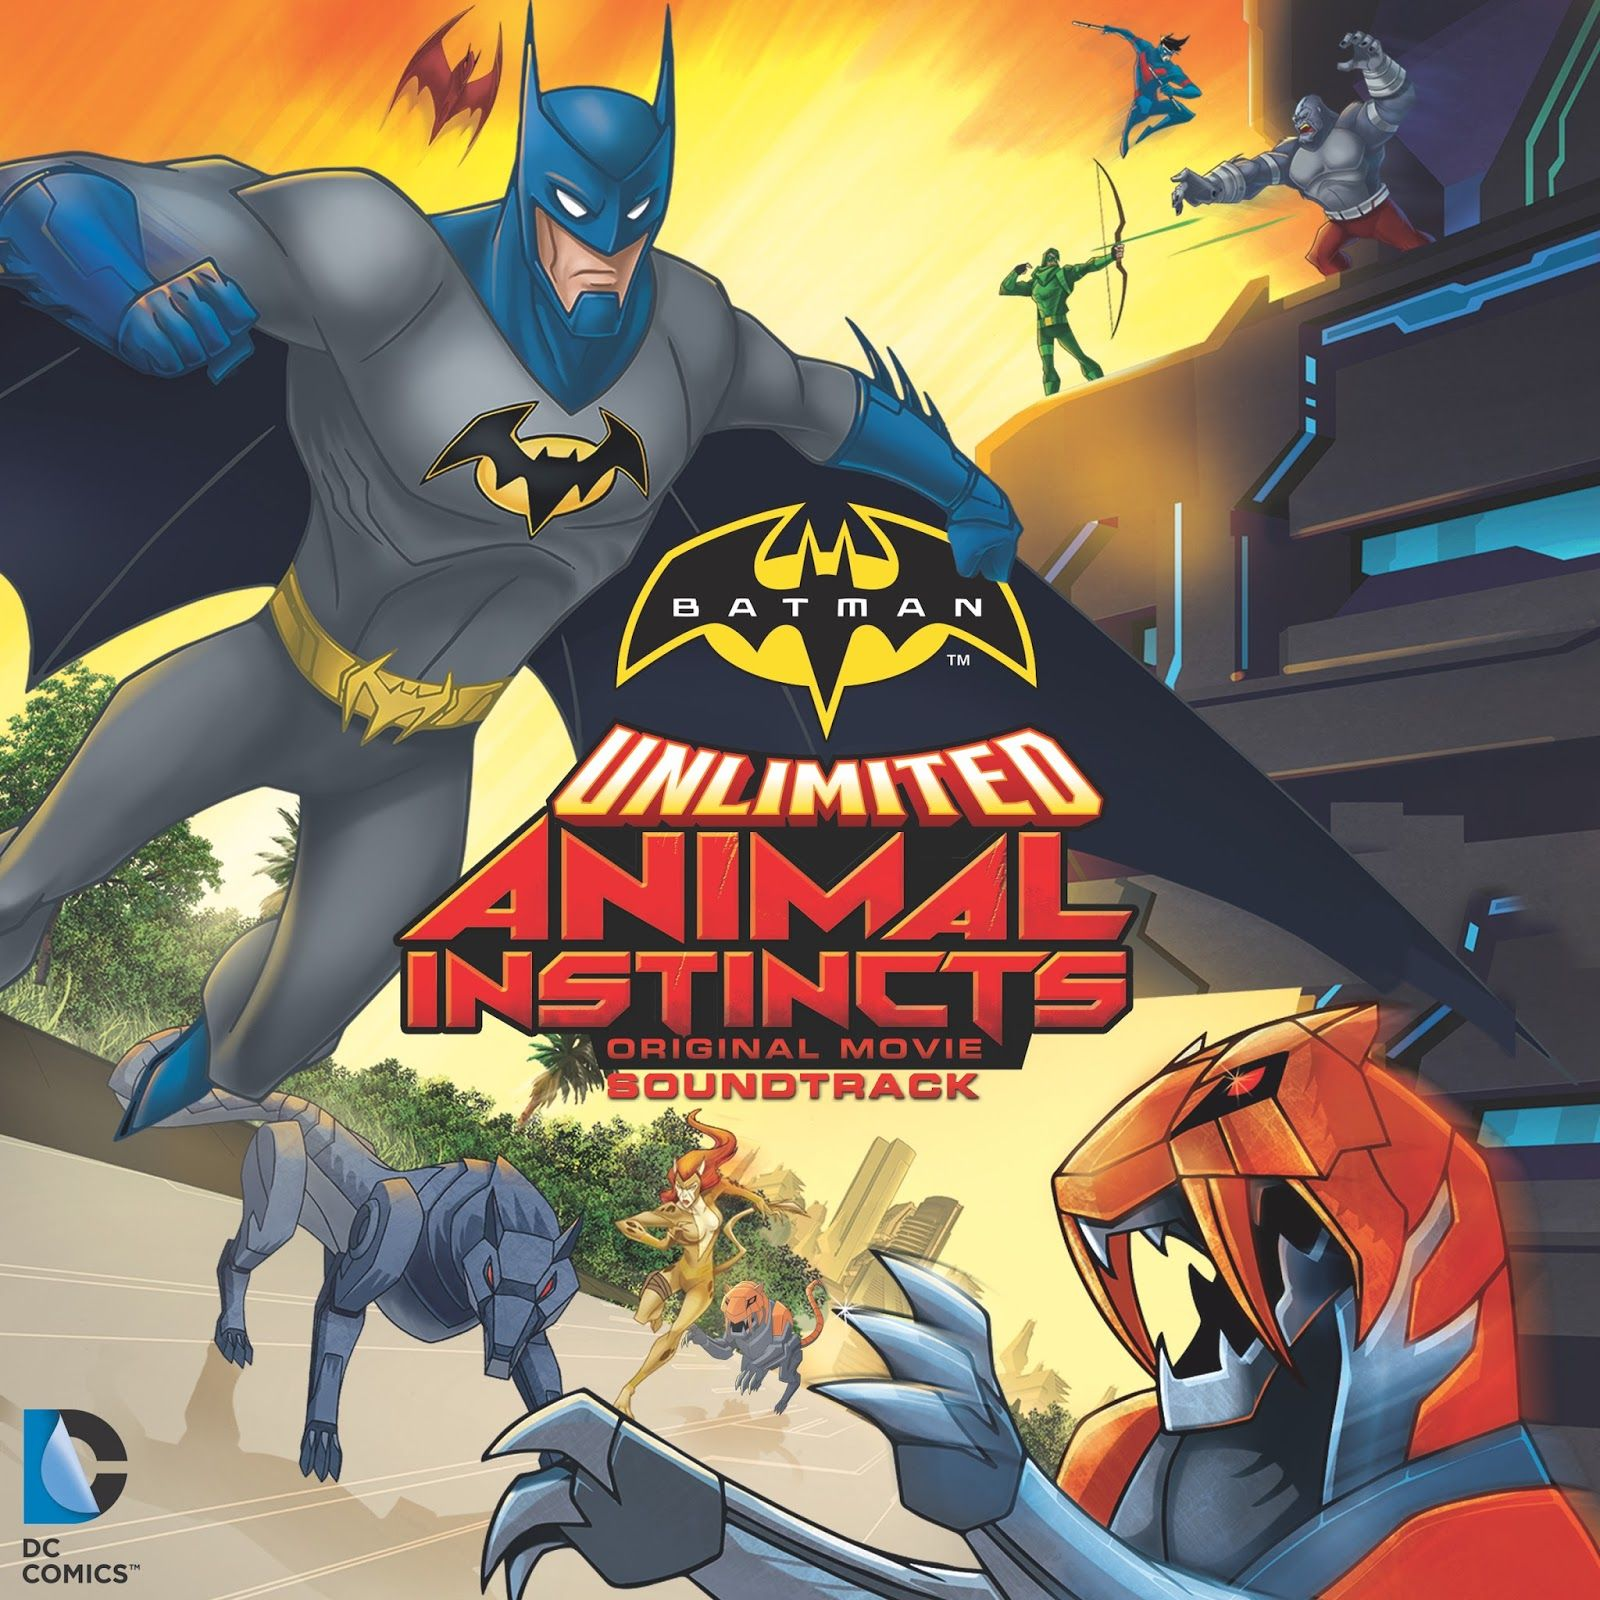 Animal Instincts Watch Online batman unlimited animal instincts soundtrackkevin riepl